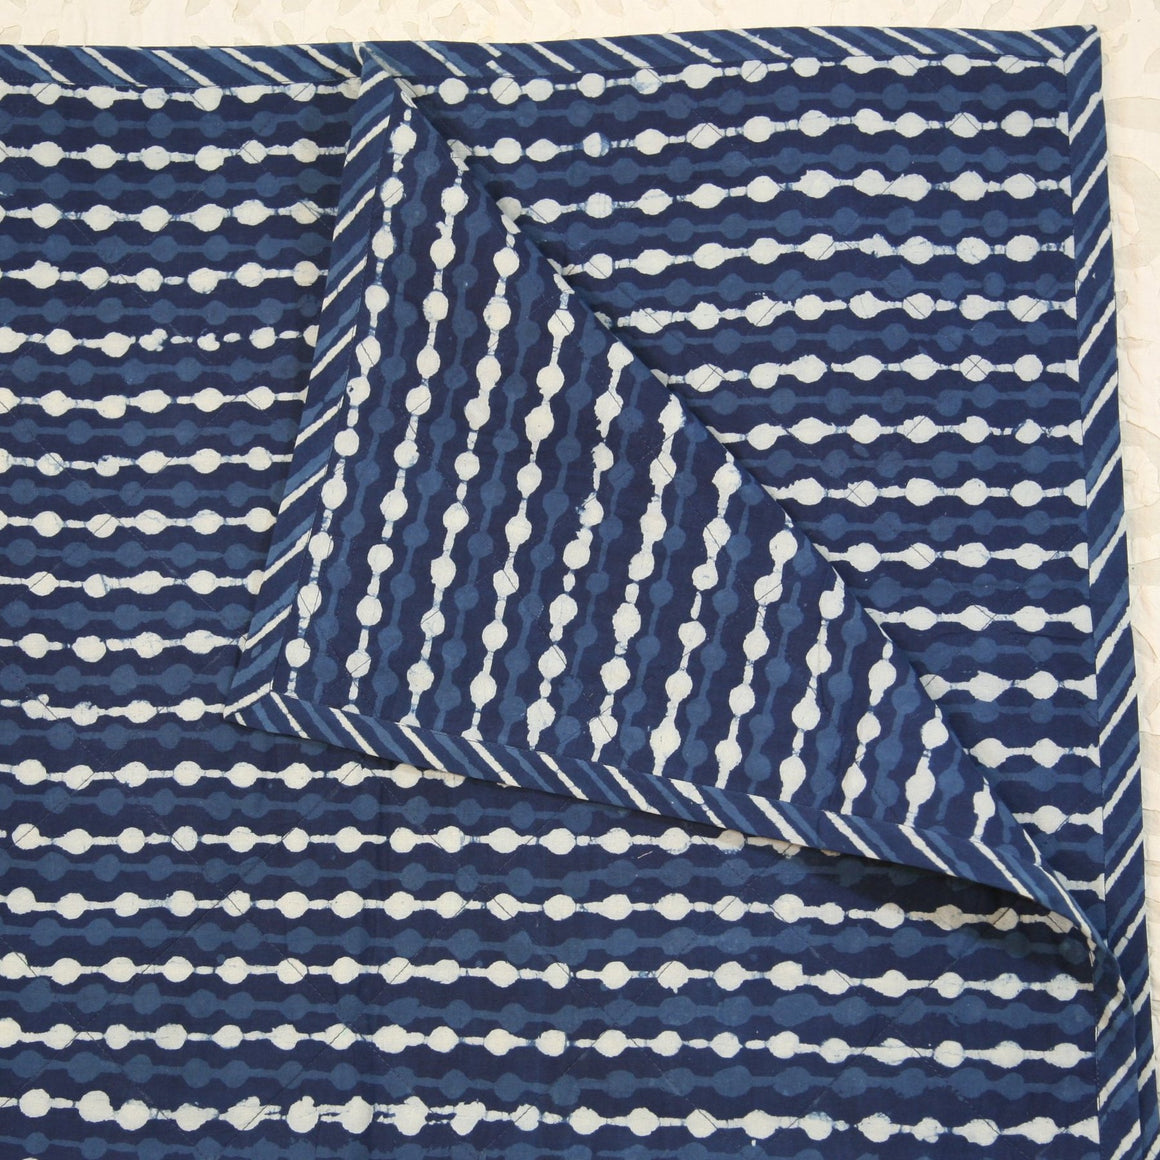 Quilted Couch Throw in Hand Block Indigo Stripes Print